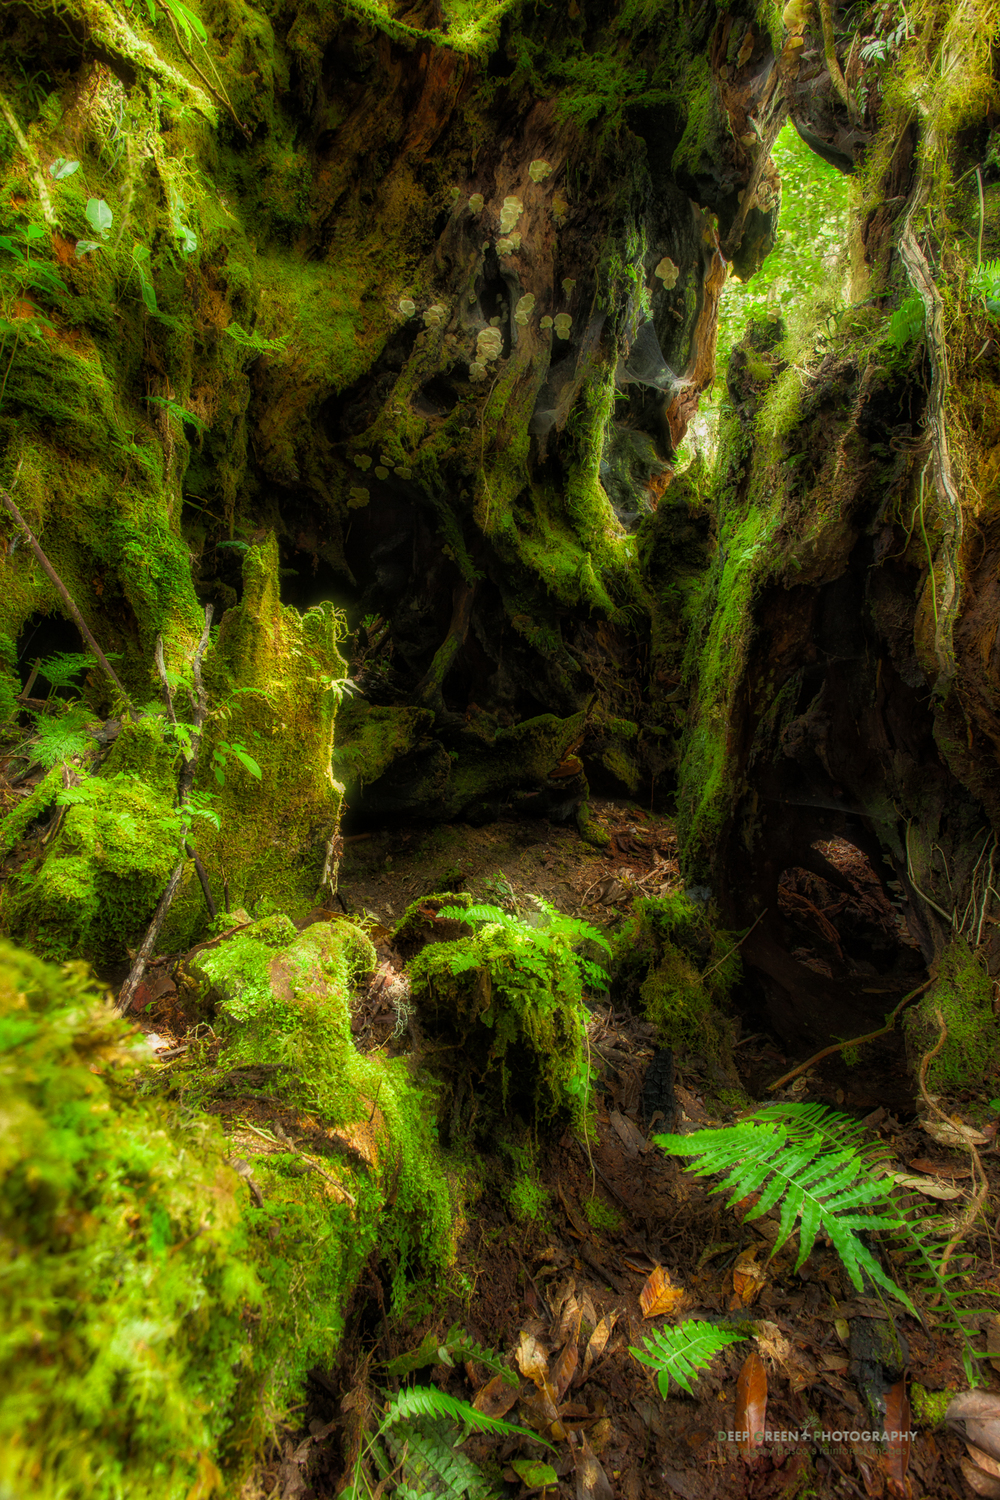 inside a giant decaying oak tree in the misty cloud forest of the Talamanca mountain range